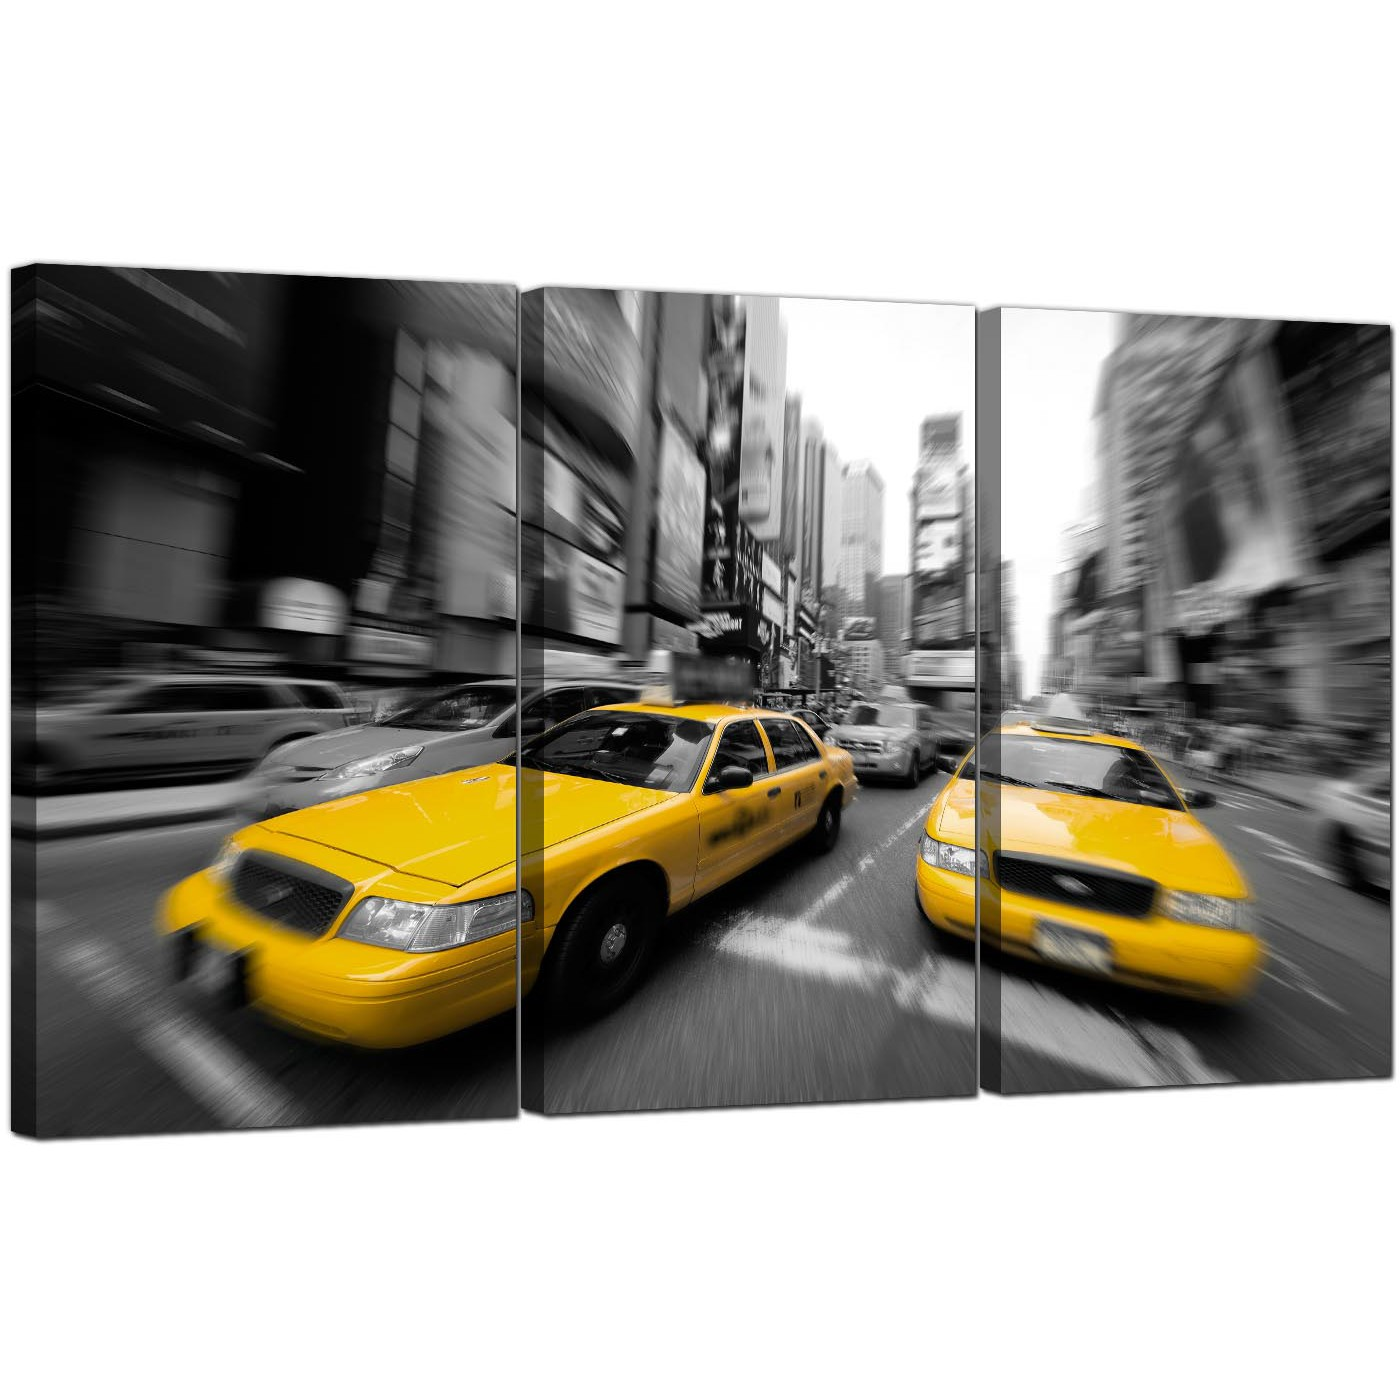 Display Gallery Item 5; Triptych City Canvas Prints New York United States  3028 Display Gallery Item 6